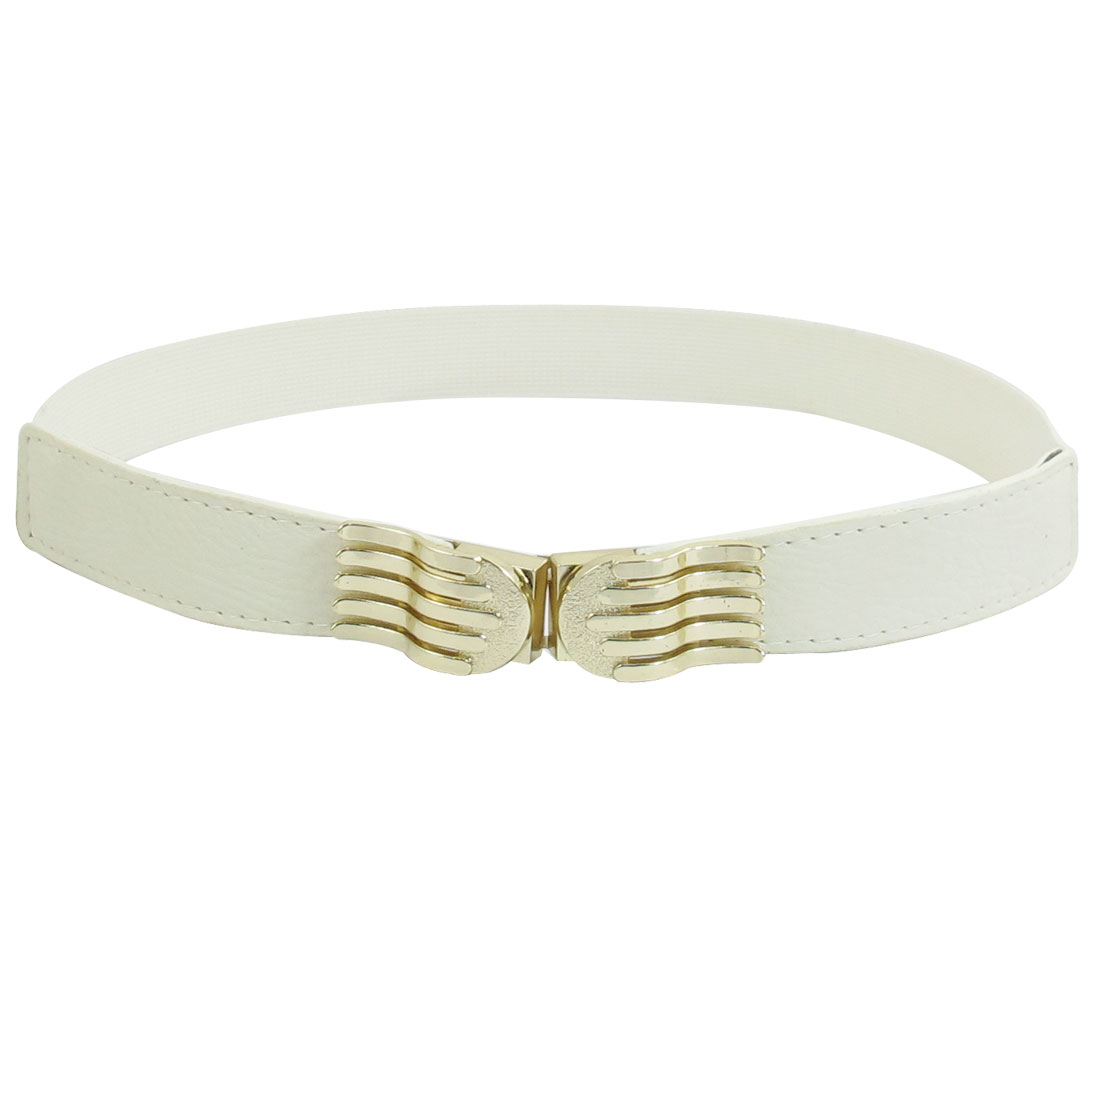 Beige Faux Leather Gold Tone Palm Shape Stretchy Waist Belt Cinch for Women